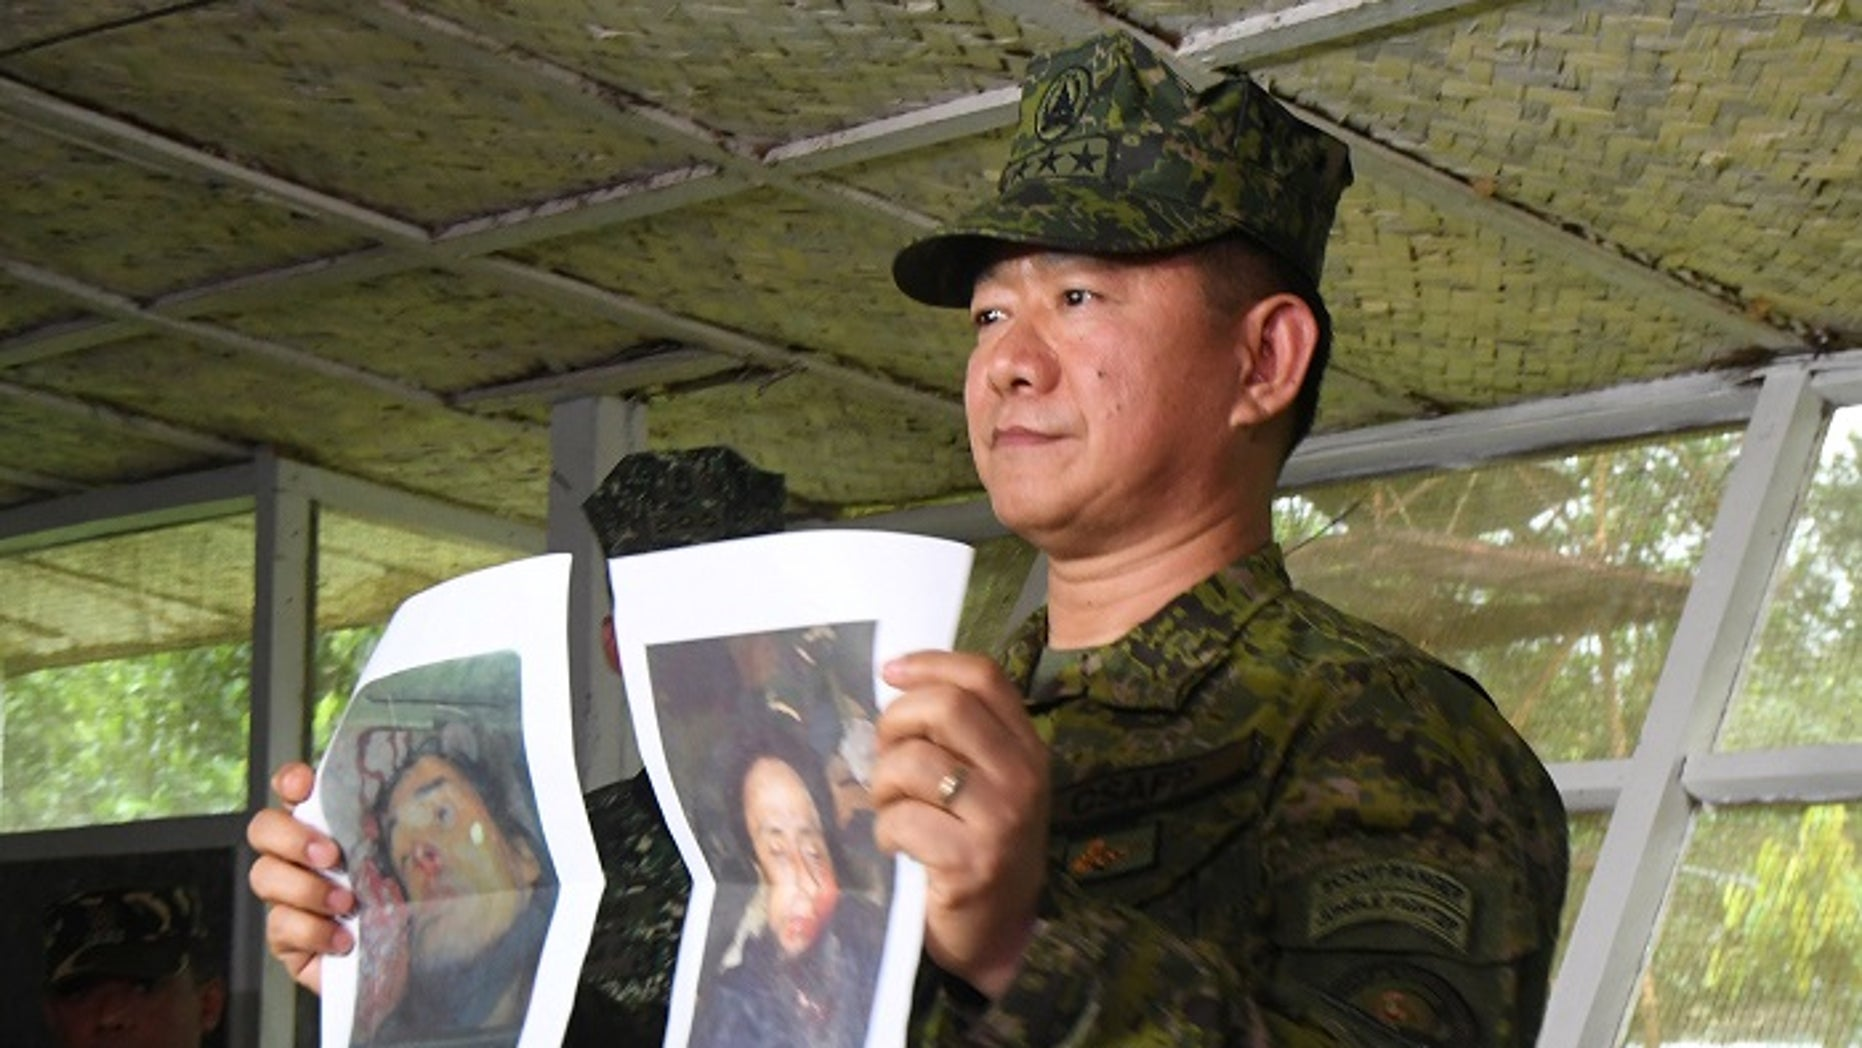 DNA tests have confirmed the killing of one of the FBI's most-wanted terror suspects, who the Philippine military reported was killed by Filipino troops in a final battle to quell an Islamic State group-linked siege in southern Marawi city, U.S. and Philippine officials said Saturday.